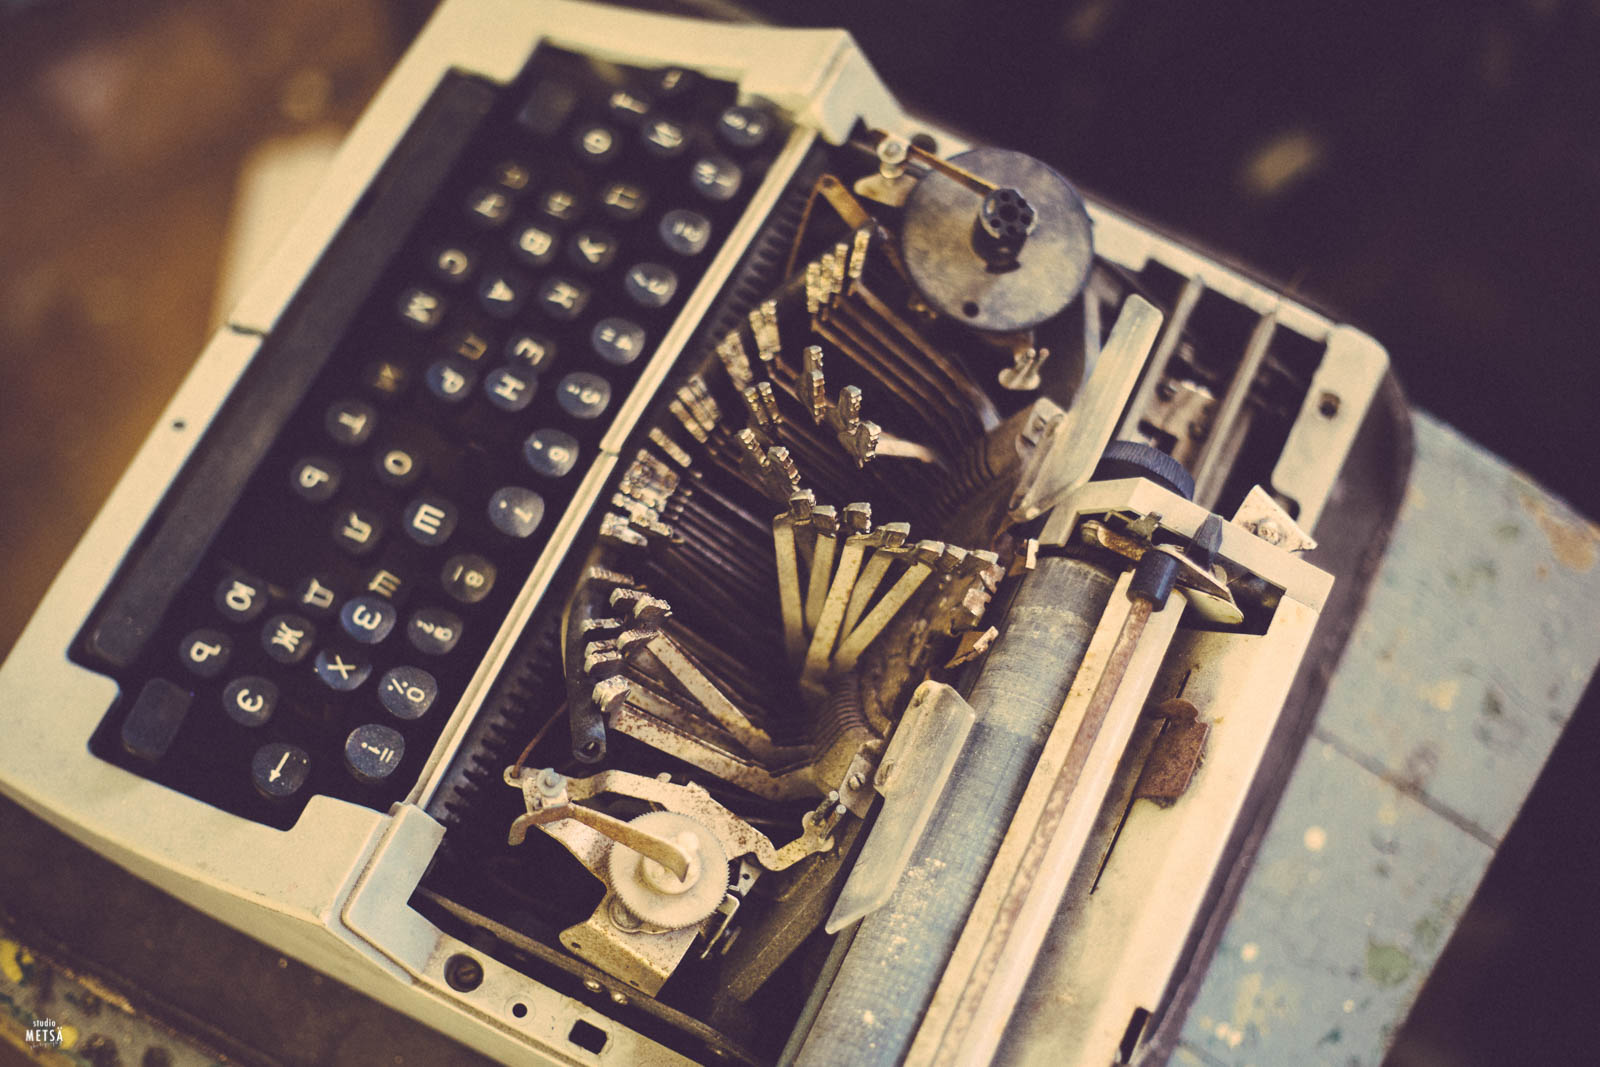 Broken typewriter in Patarei prison Studio Metsä Photography